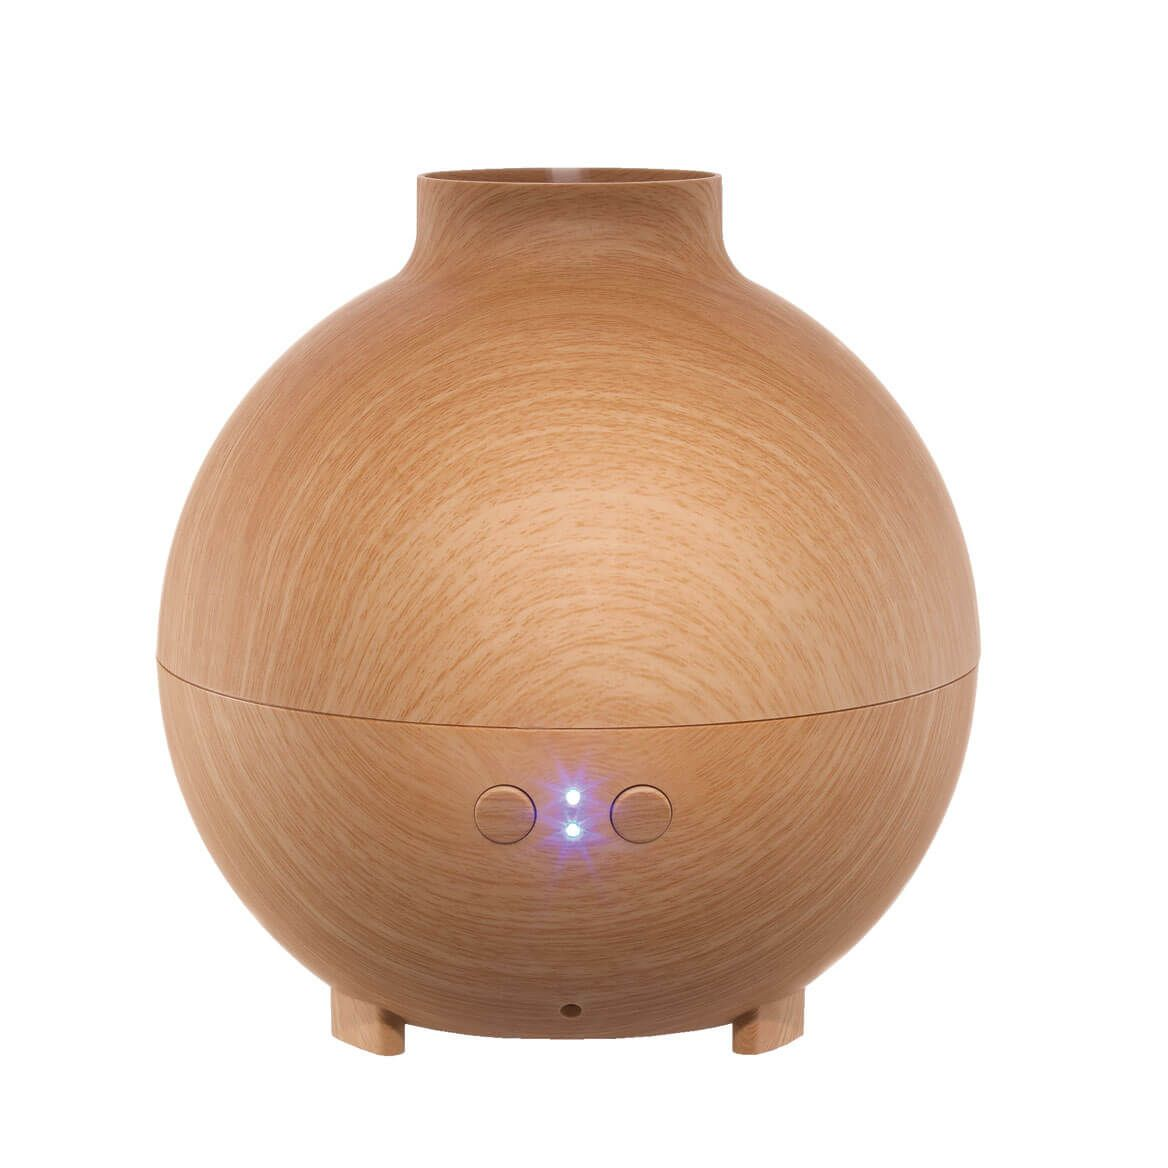 Lighted Essential Oil Diffuser & Humidifier, 600 ml-356189